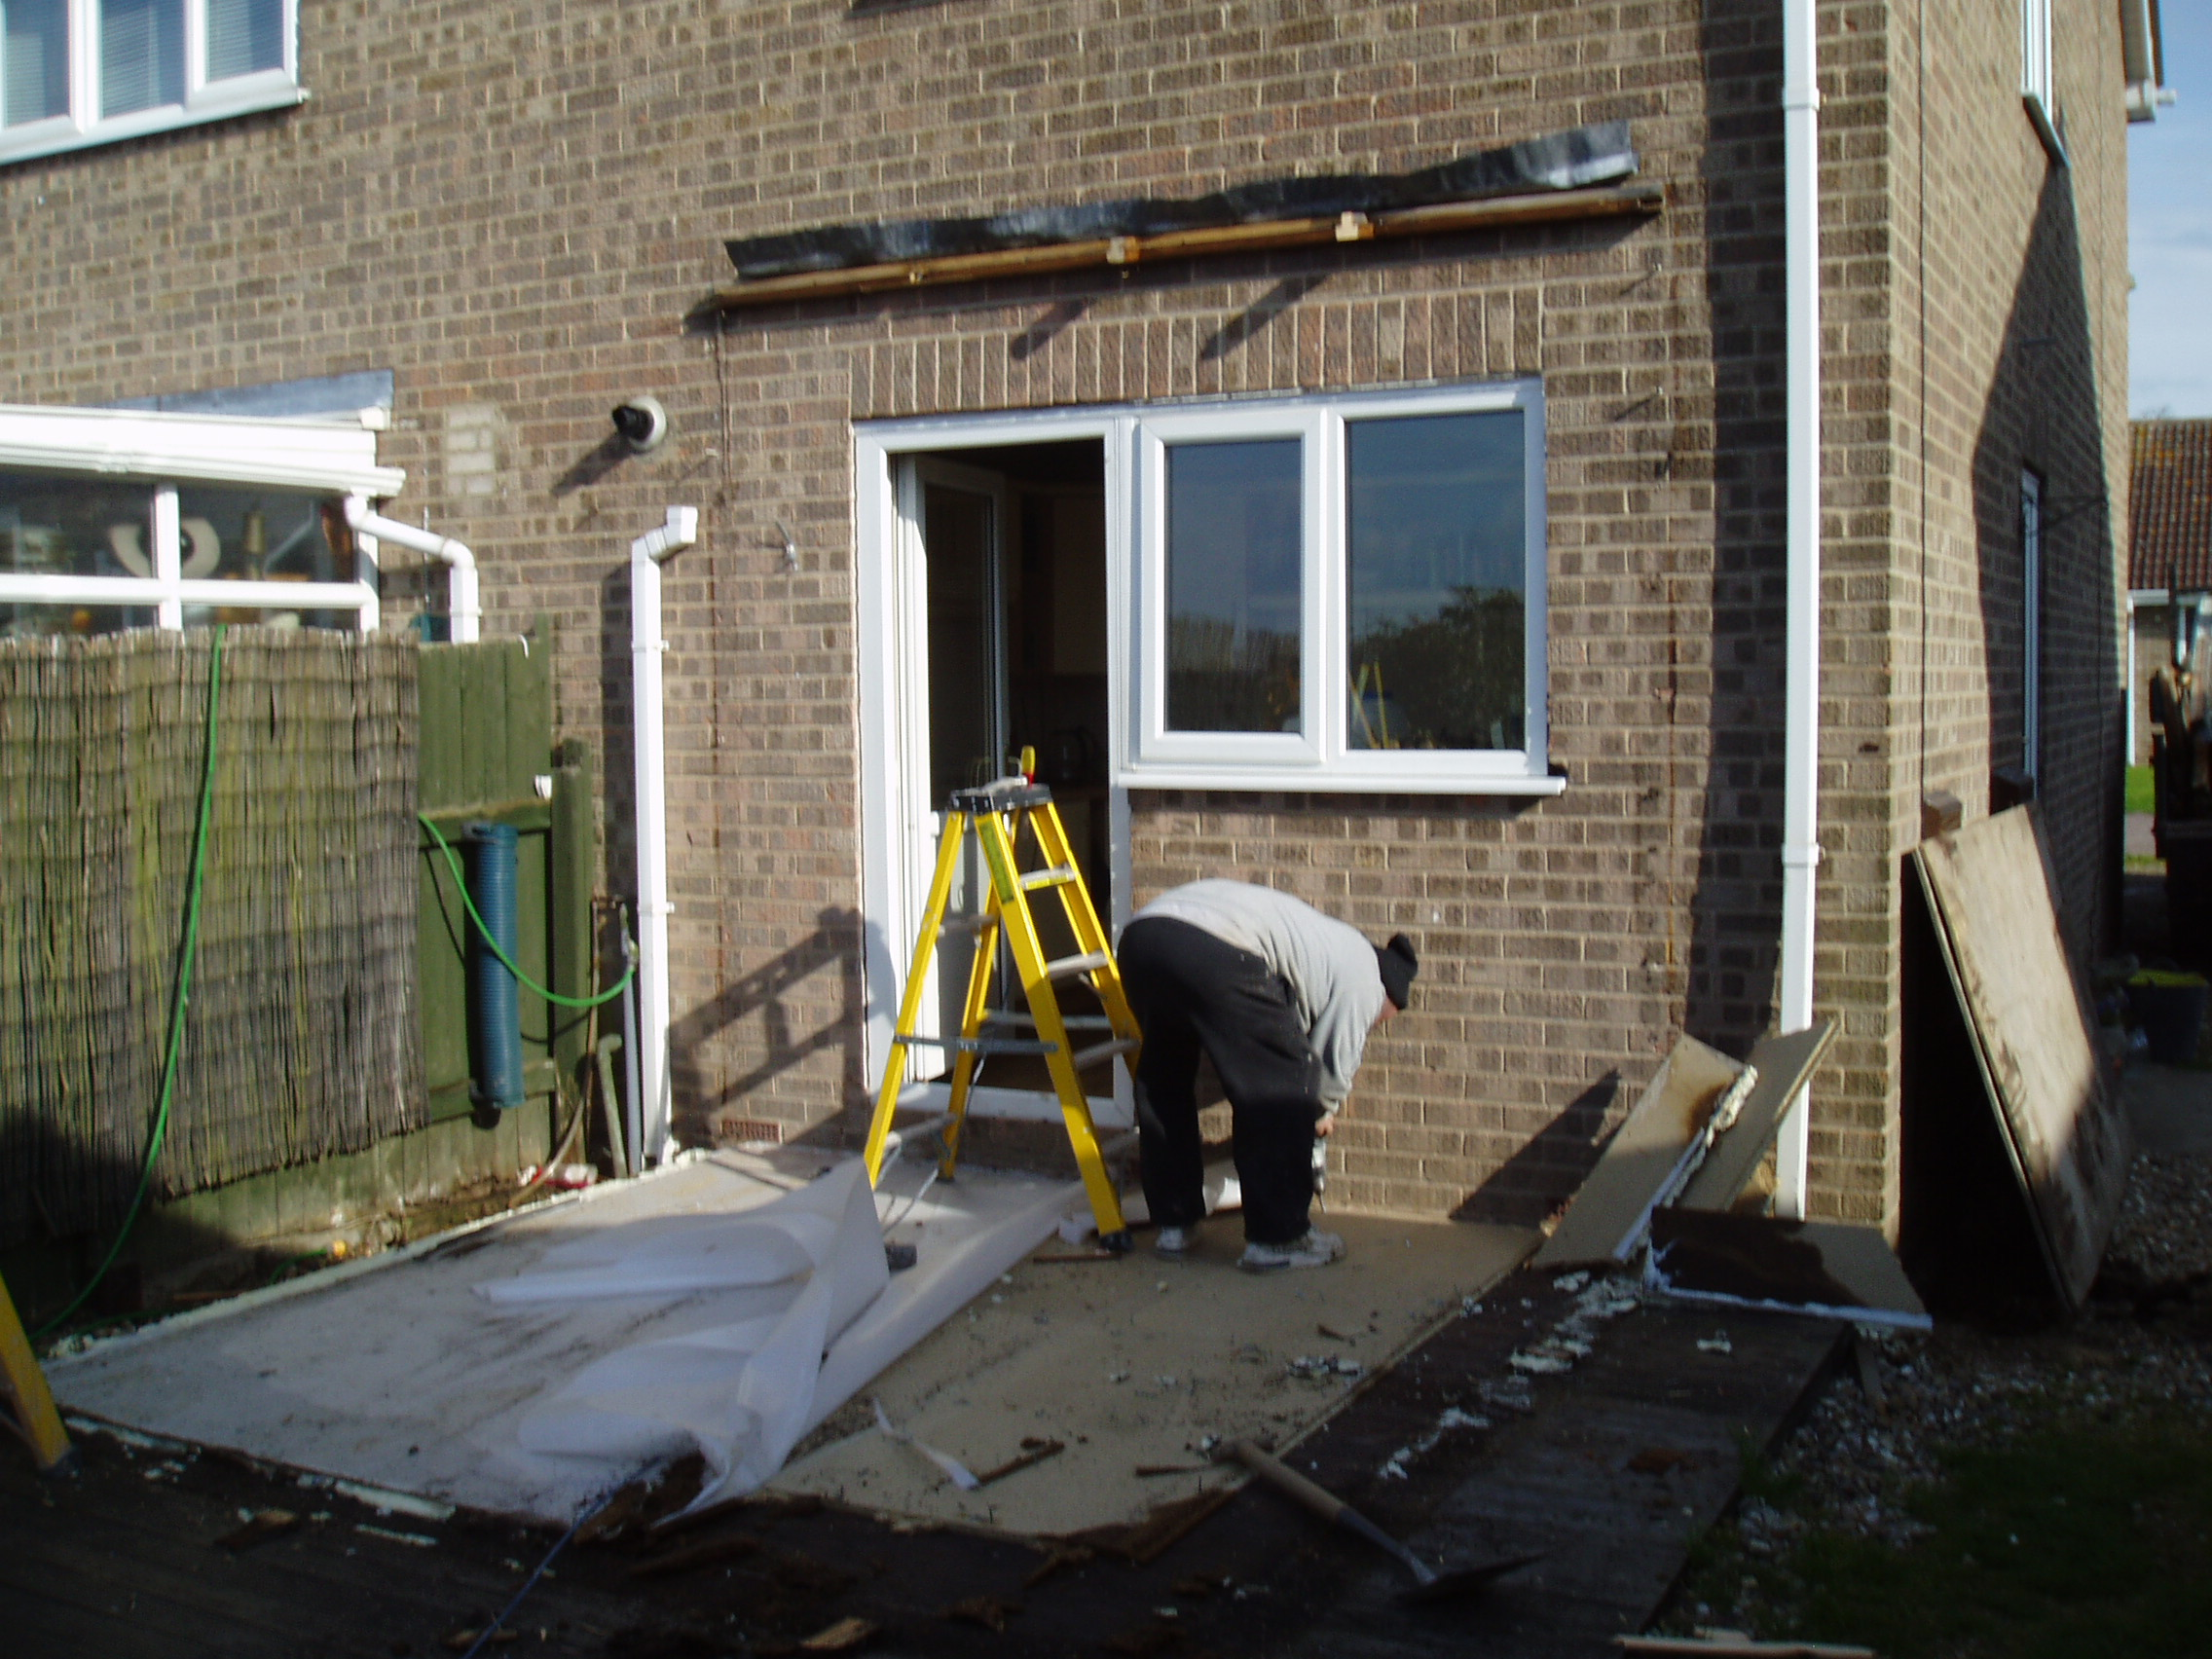 OLYMPUS DIGITAL CAMERA. East Yorkshire Home Extension Builder   Total Improvements Limited